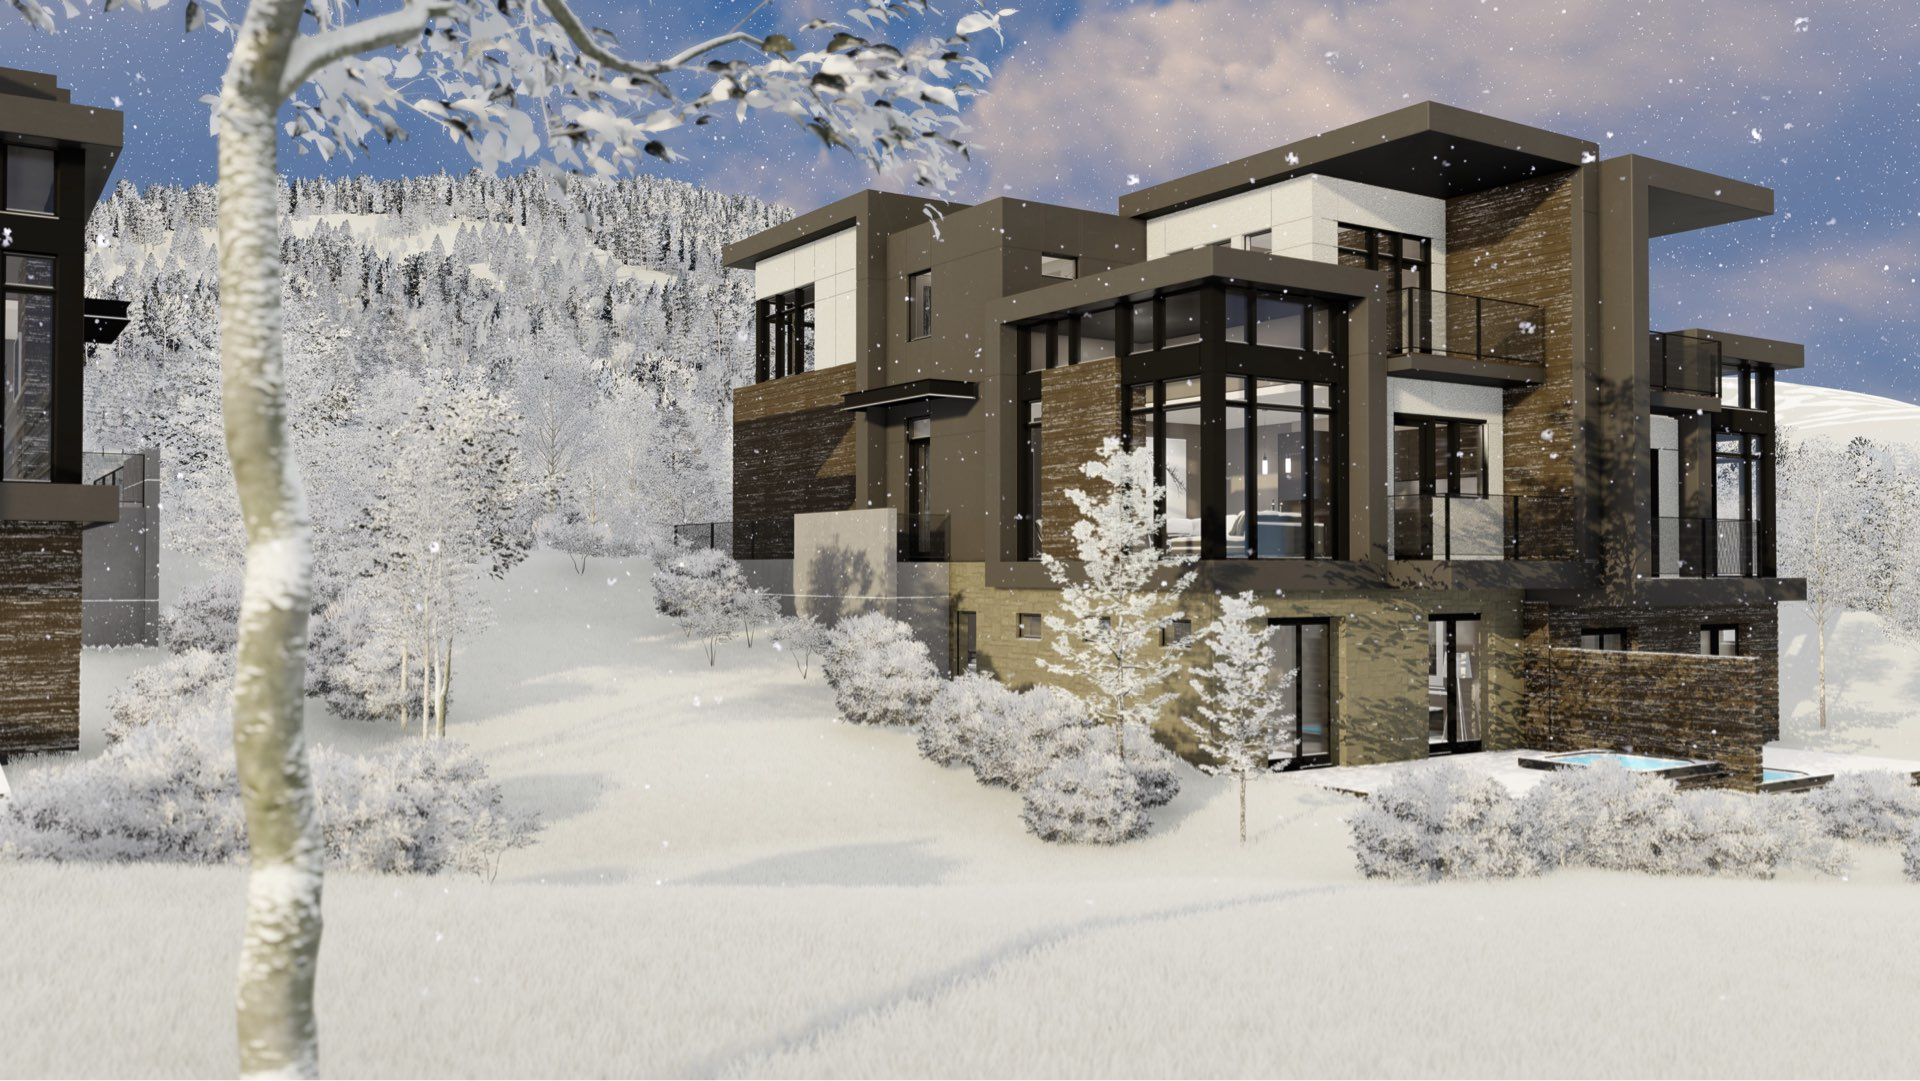 Townhouse rendering of Viridian Townhomes at Canyons Village in Park City, Utah, architectural design by Elliott Workgroup